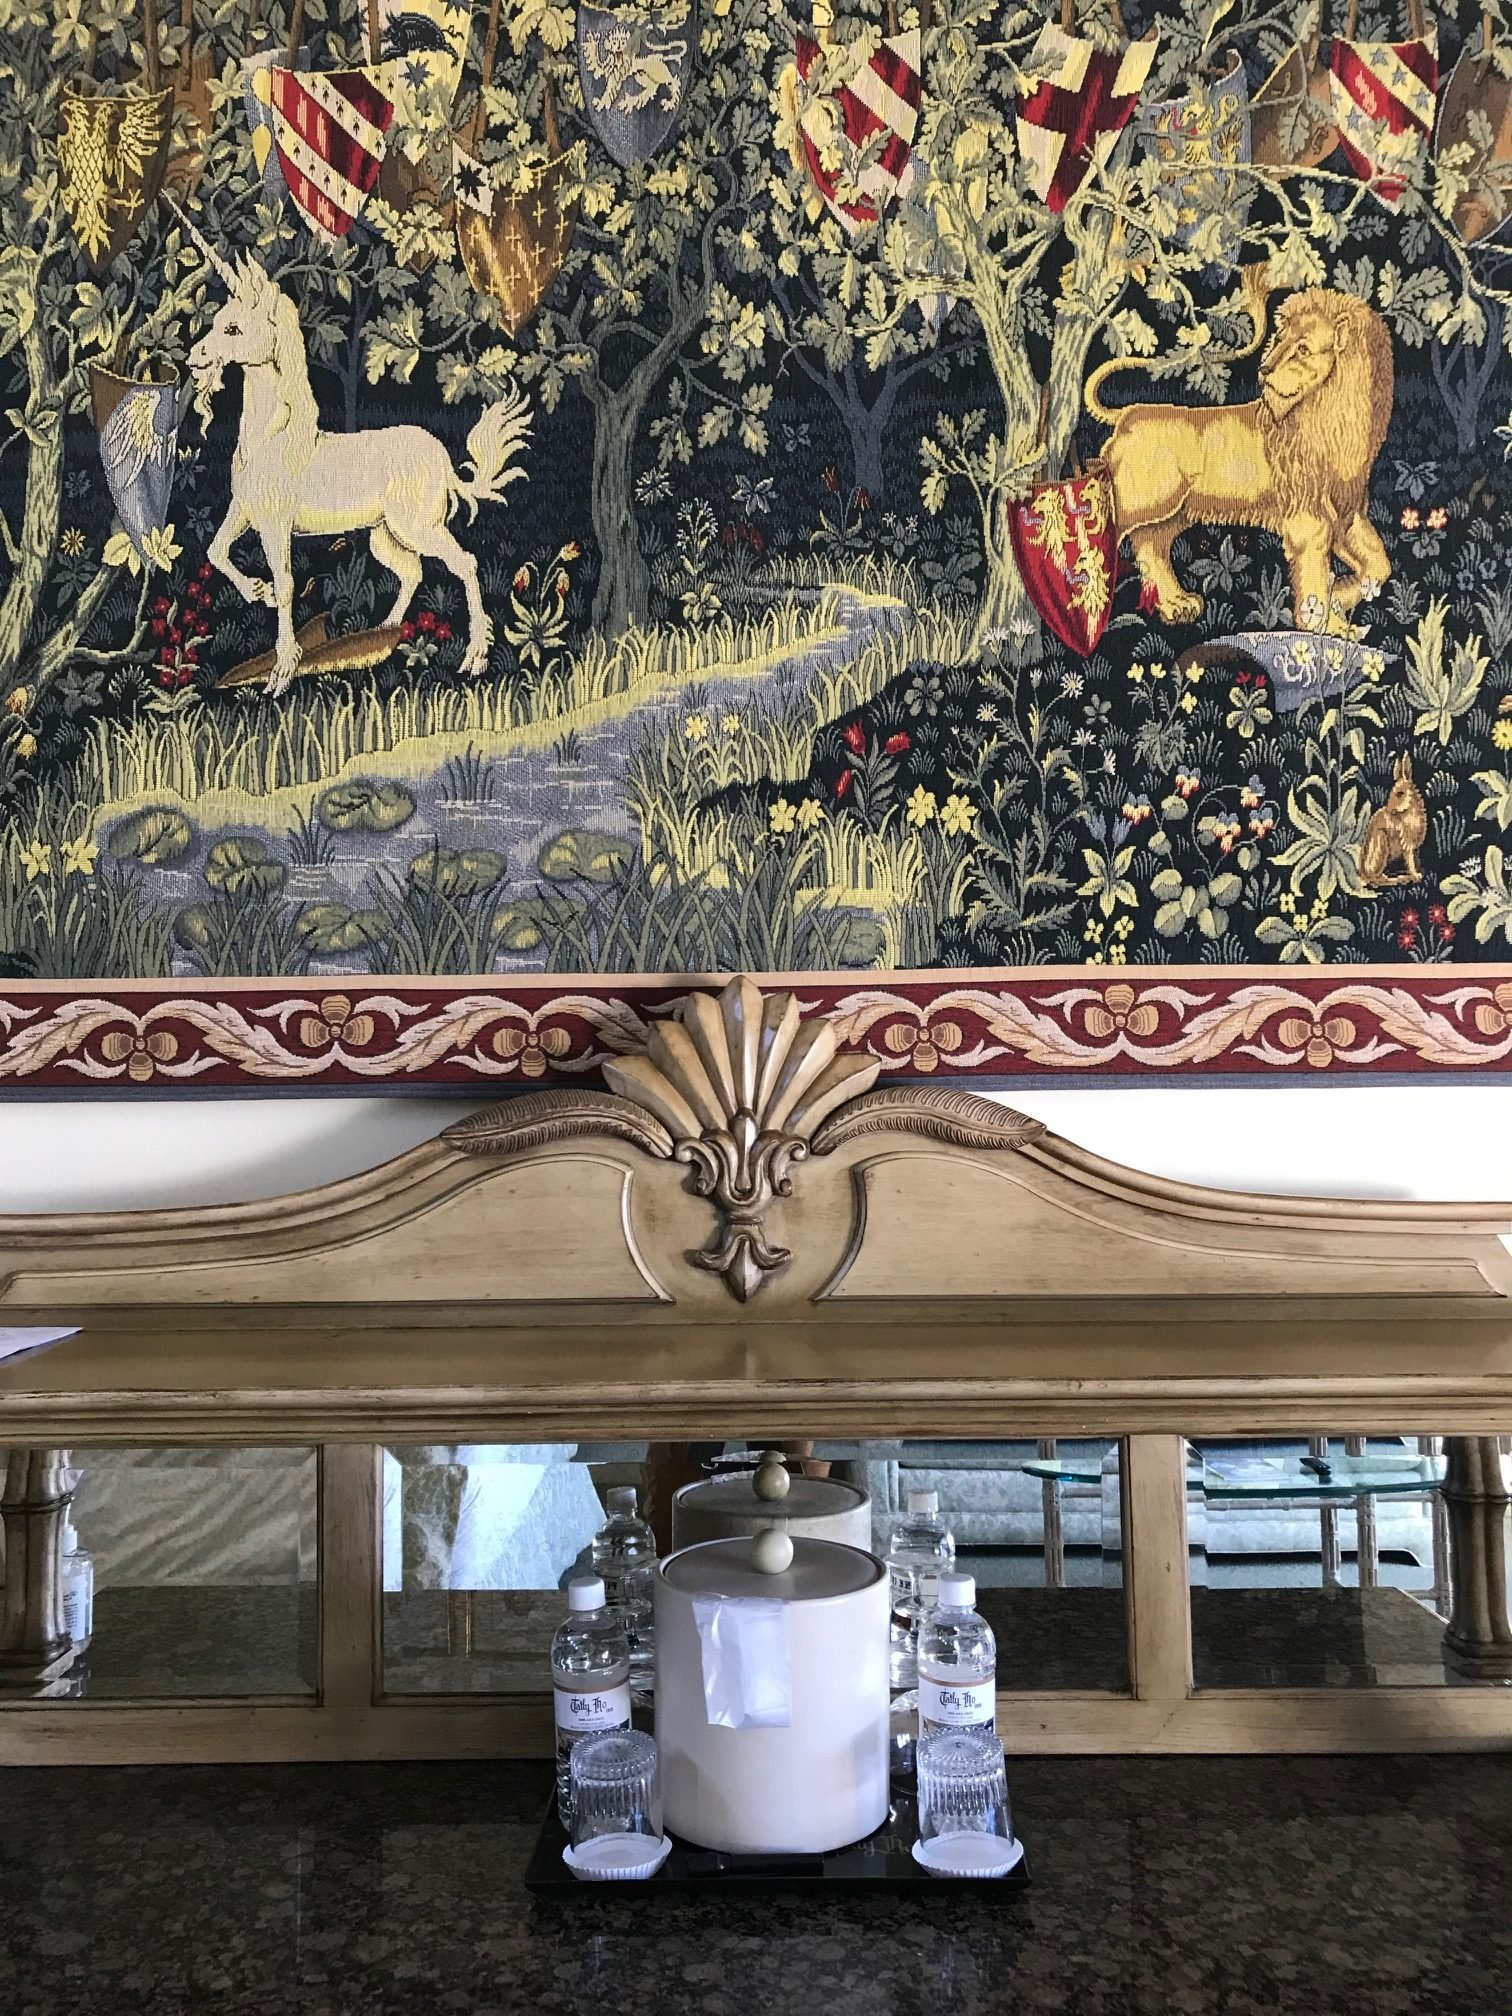 Carmel's Charming Tally Ho Inn • We Blog The World